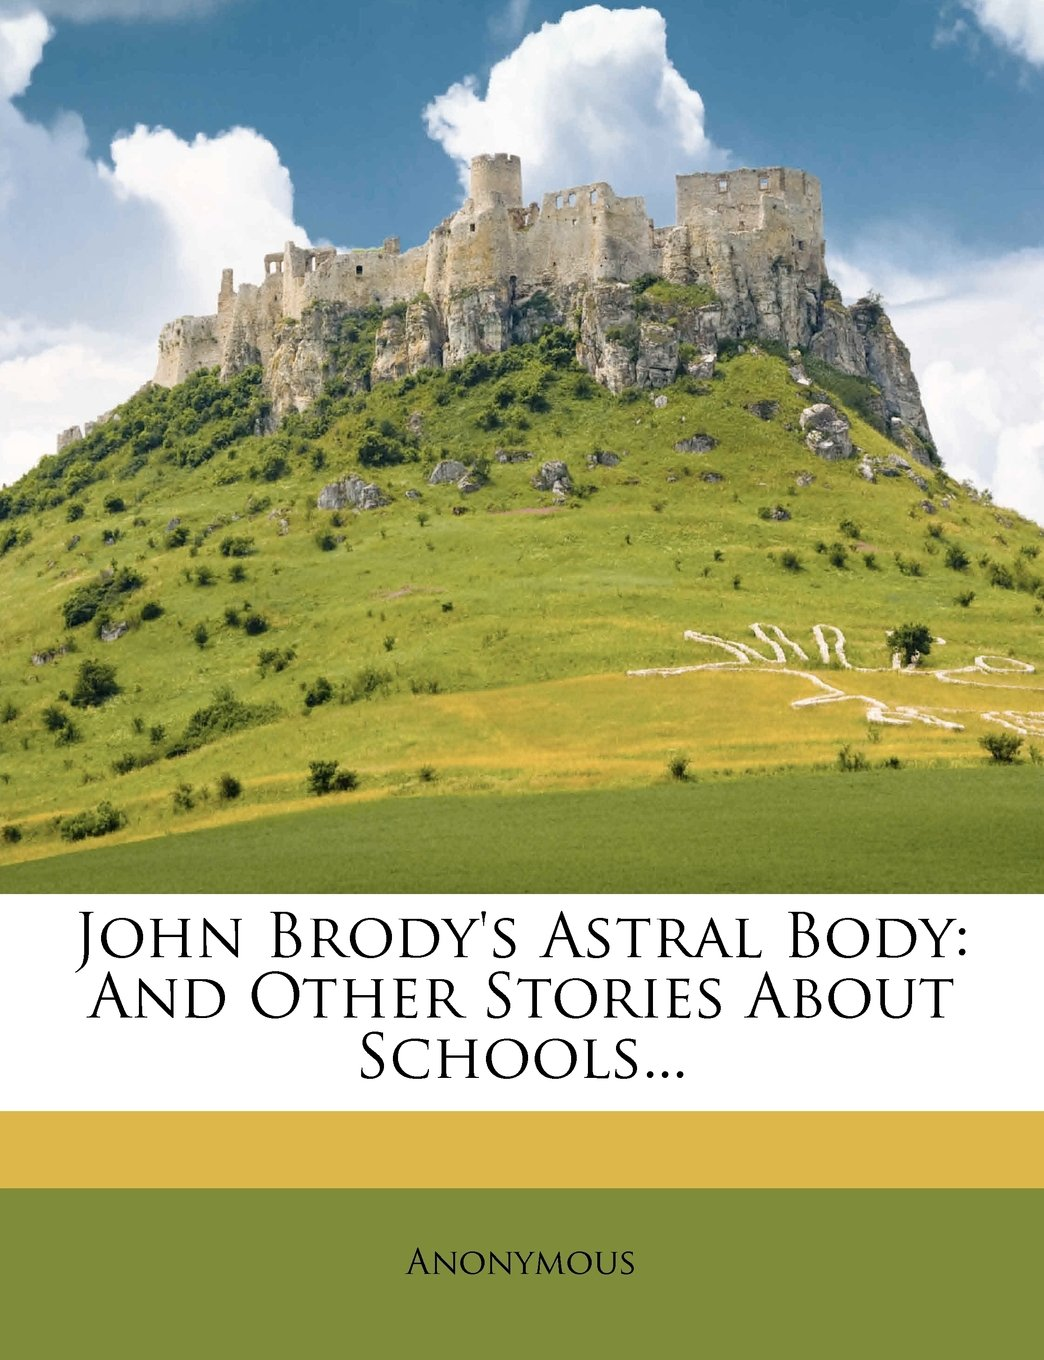 Download John Brody's Astral Body: And Other Stories About Schools... PDF